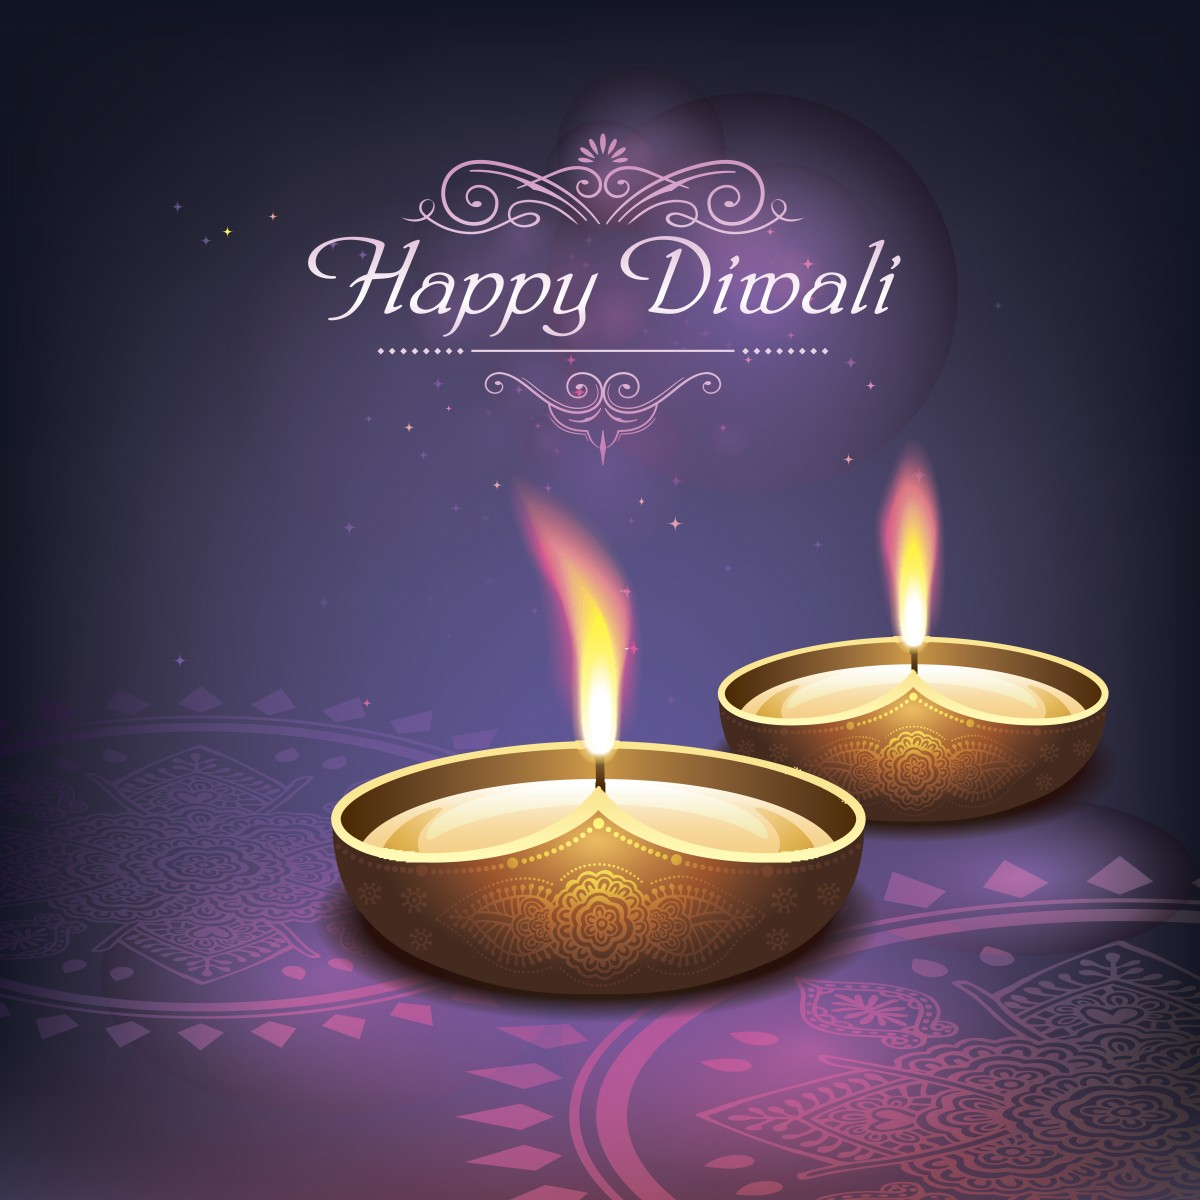 Deepavali greetings for facebook wall life lyrics diwali greetings for facebook whatsapp m4hsunfo